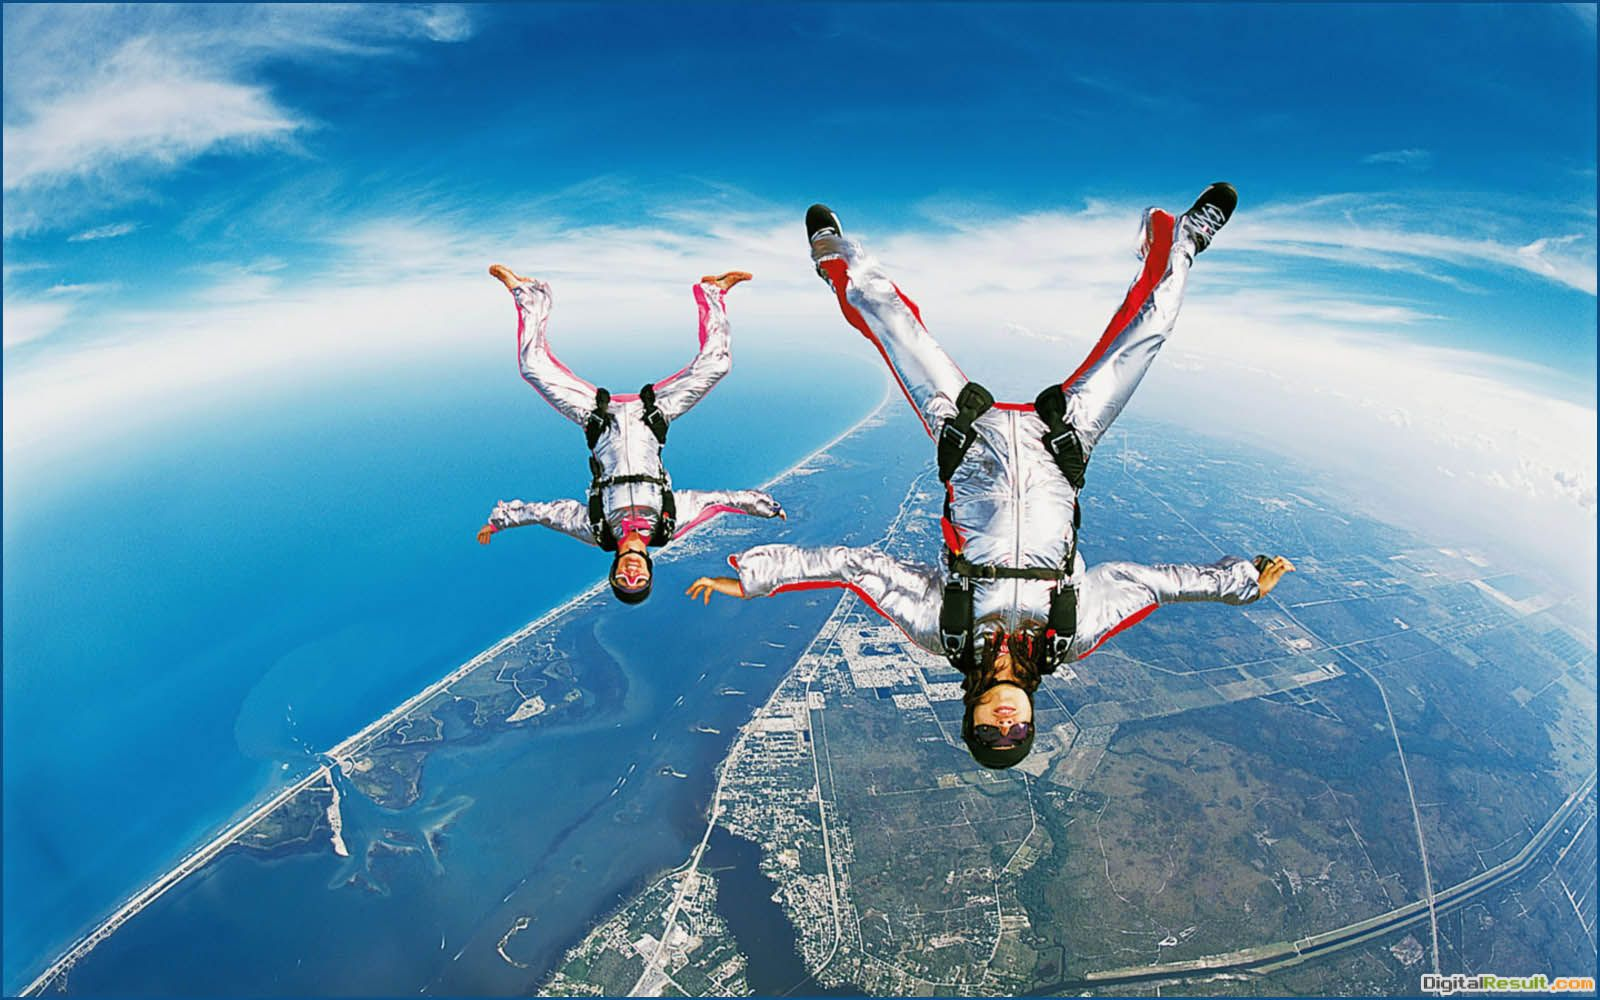 images of skydiving desktop wallpapers backgrounds wallpaper 1525